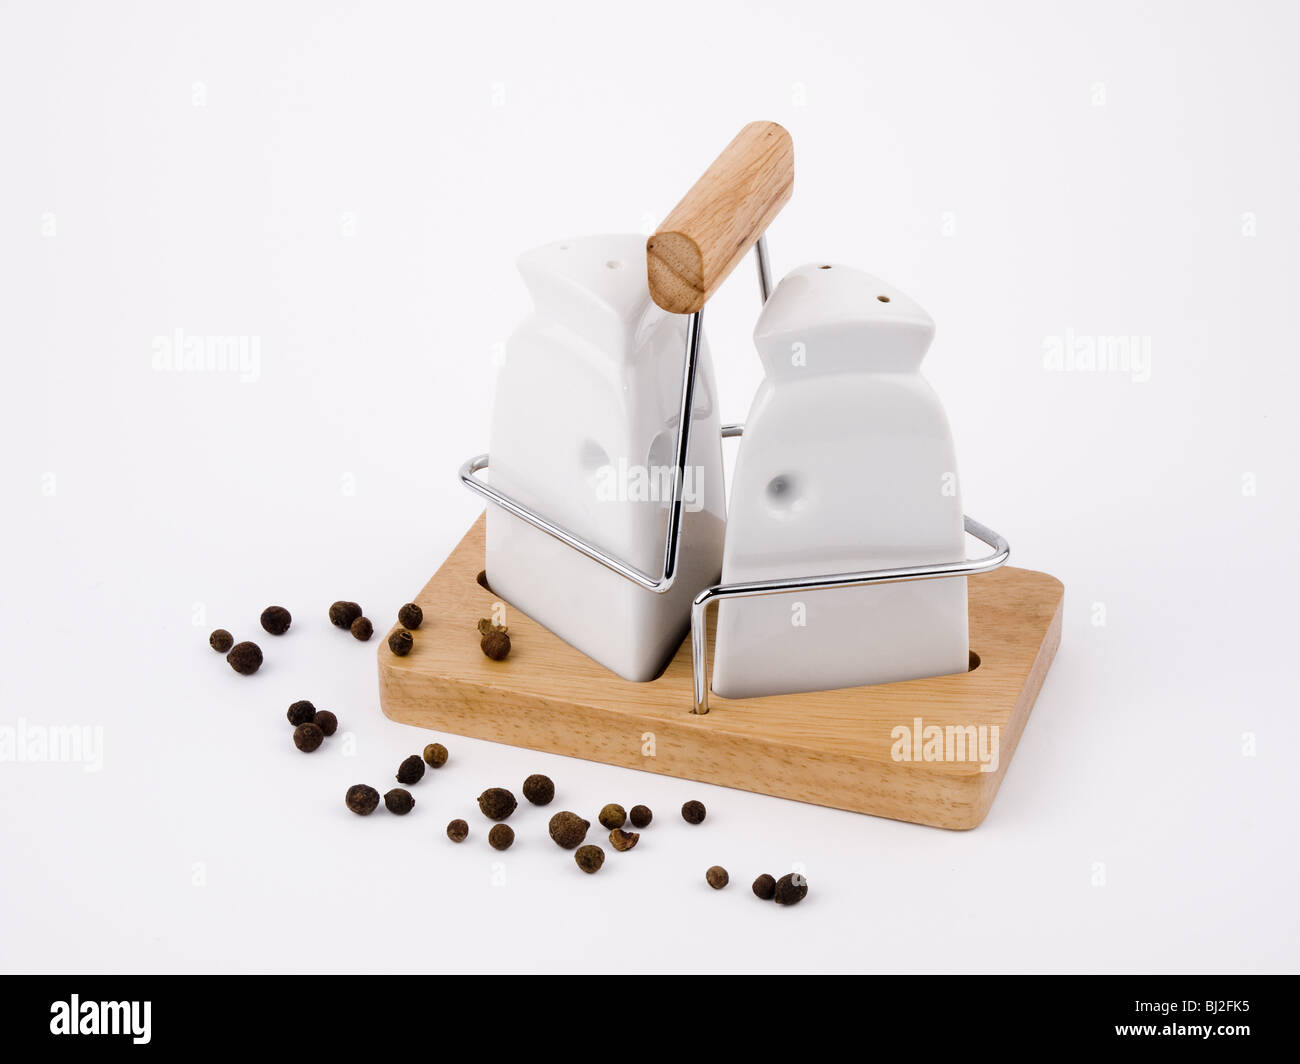 Salt cellar and pepperpot on white background. - Stock Image